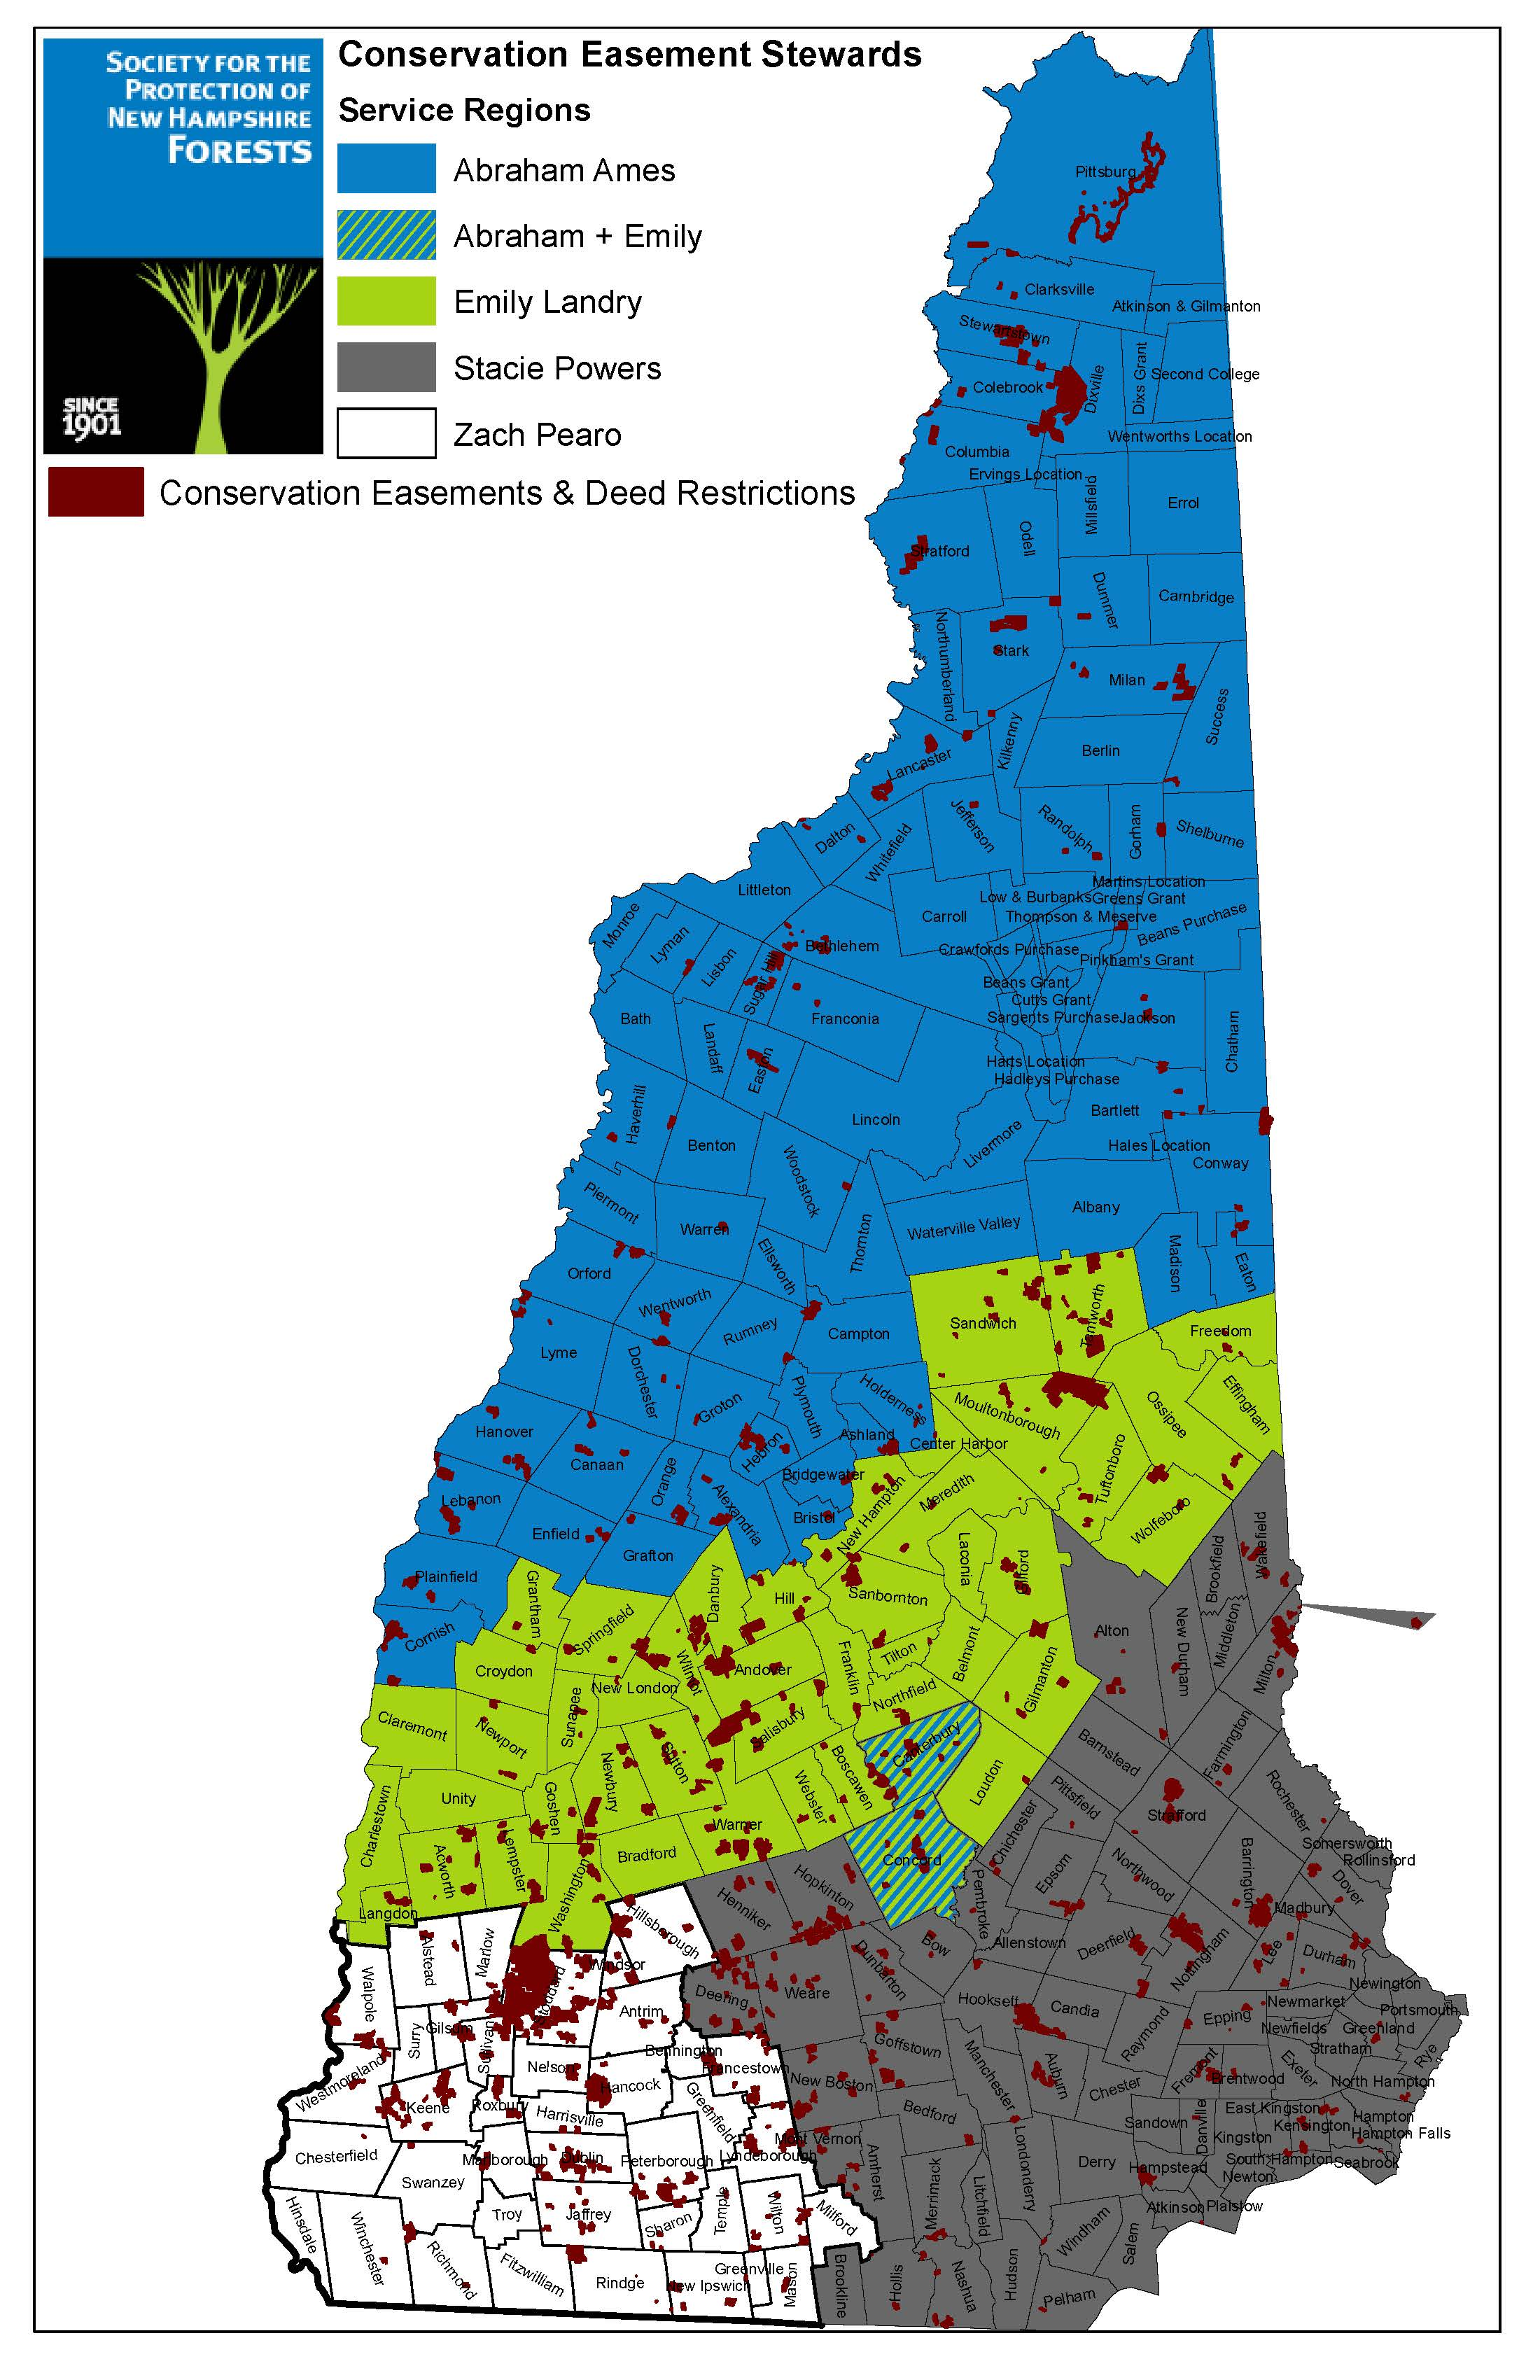 map of NH Forest Society easement steward regions